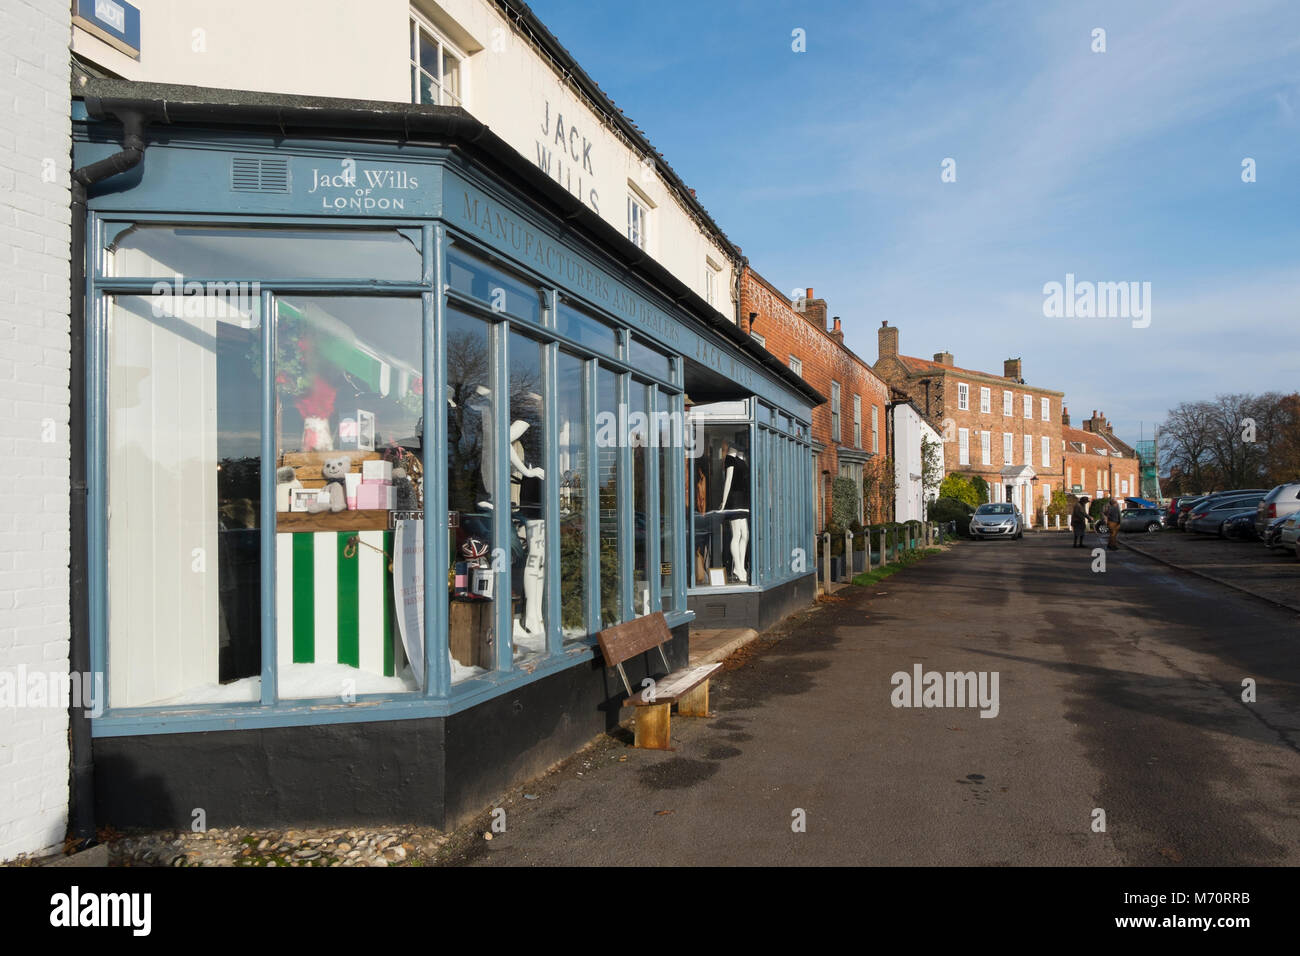 Jack Wills, contemporary clothing shop in Burnham Market, North Norfolk, UK - Stock Image